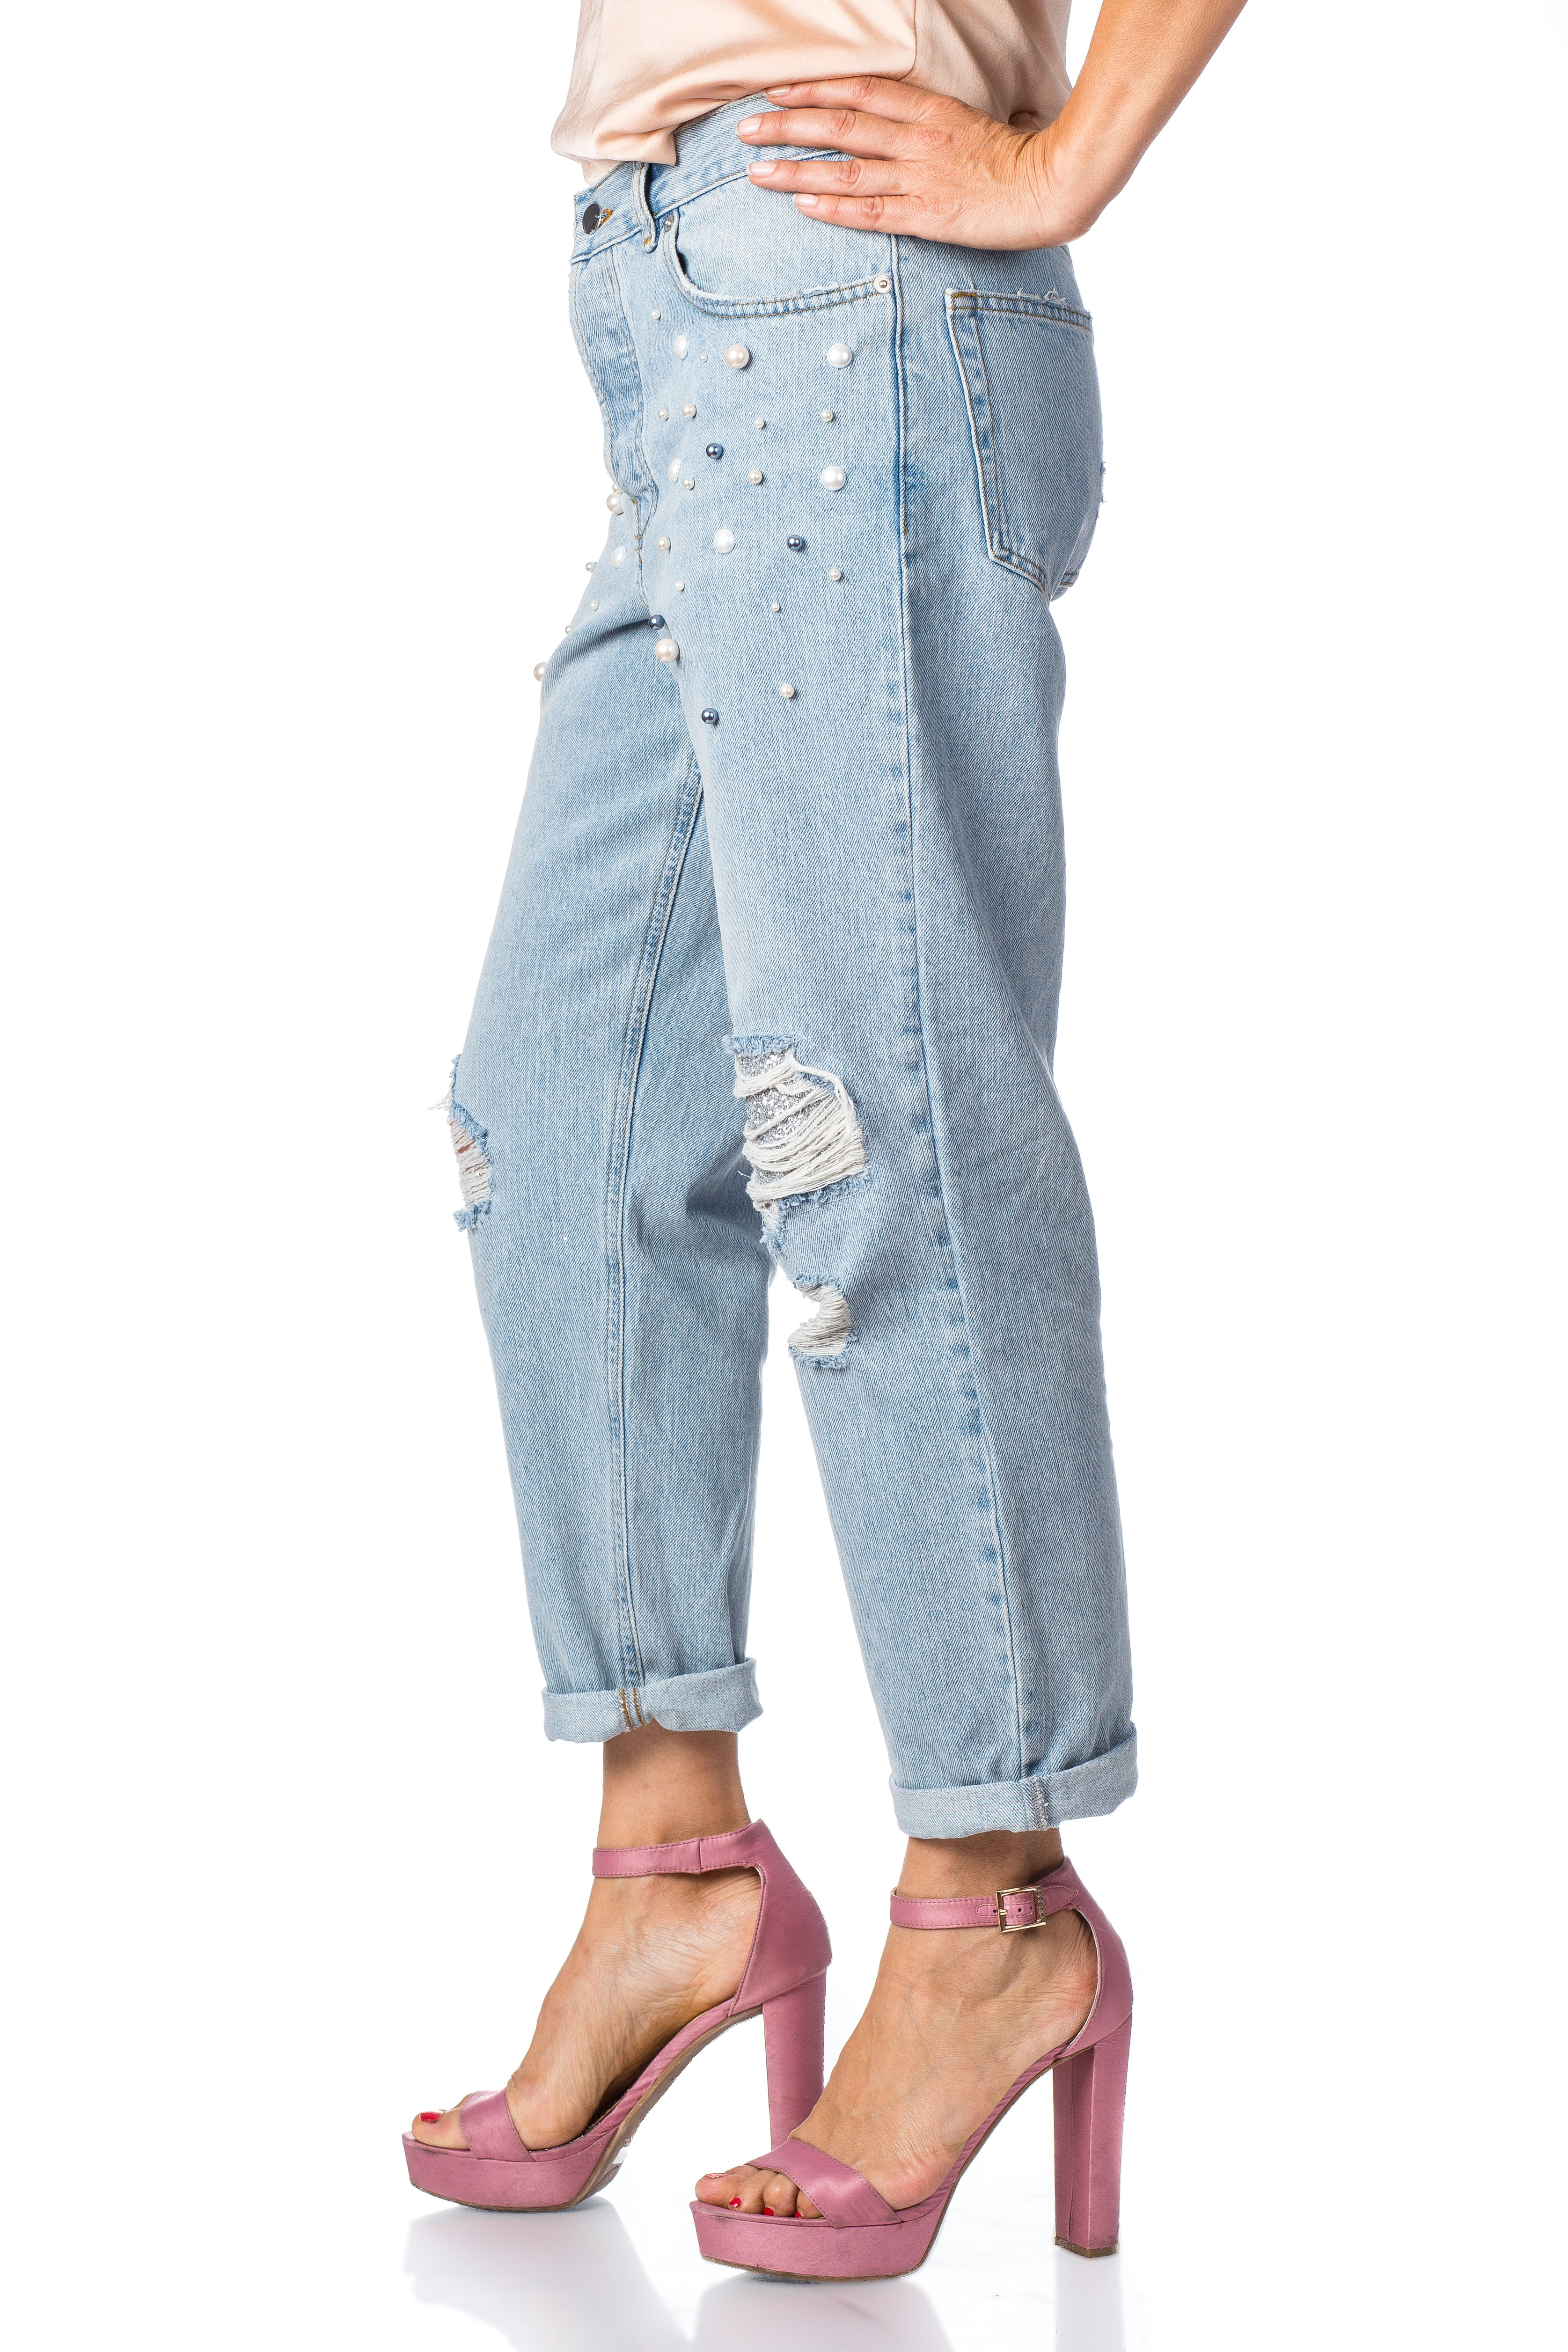 Kelly pearl encrusted high waisted distressed boyfriend jean